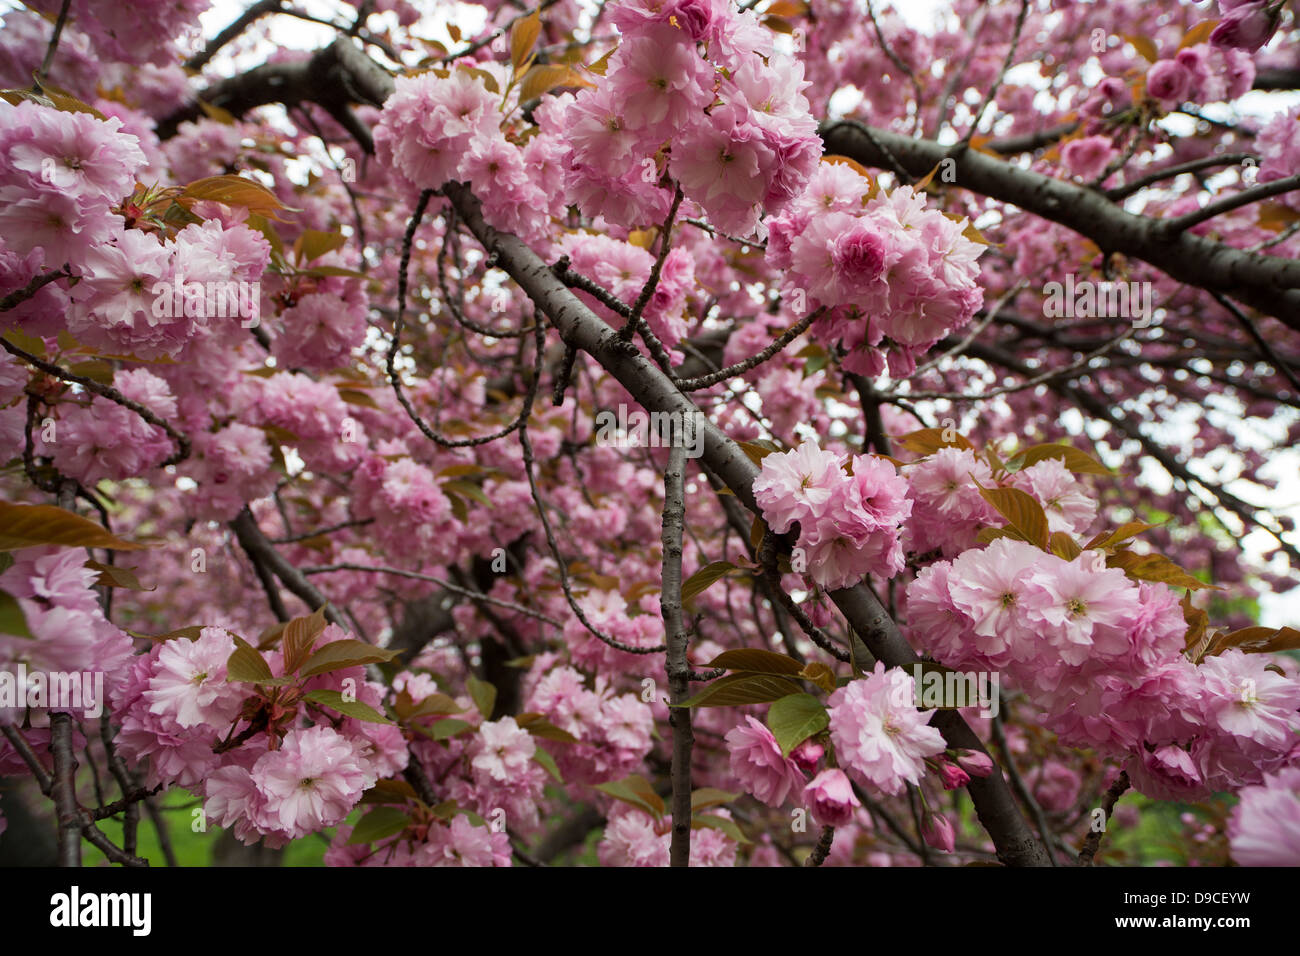 Cherry Tree Prunus Sargentii With Fresh Pink Flowers In Early